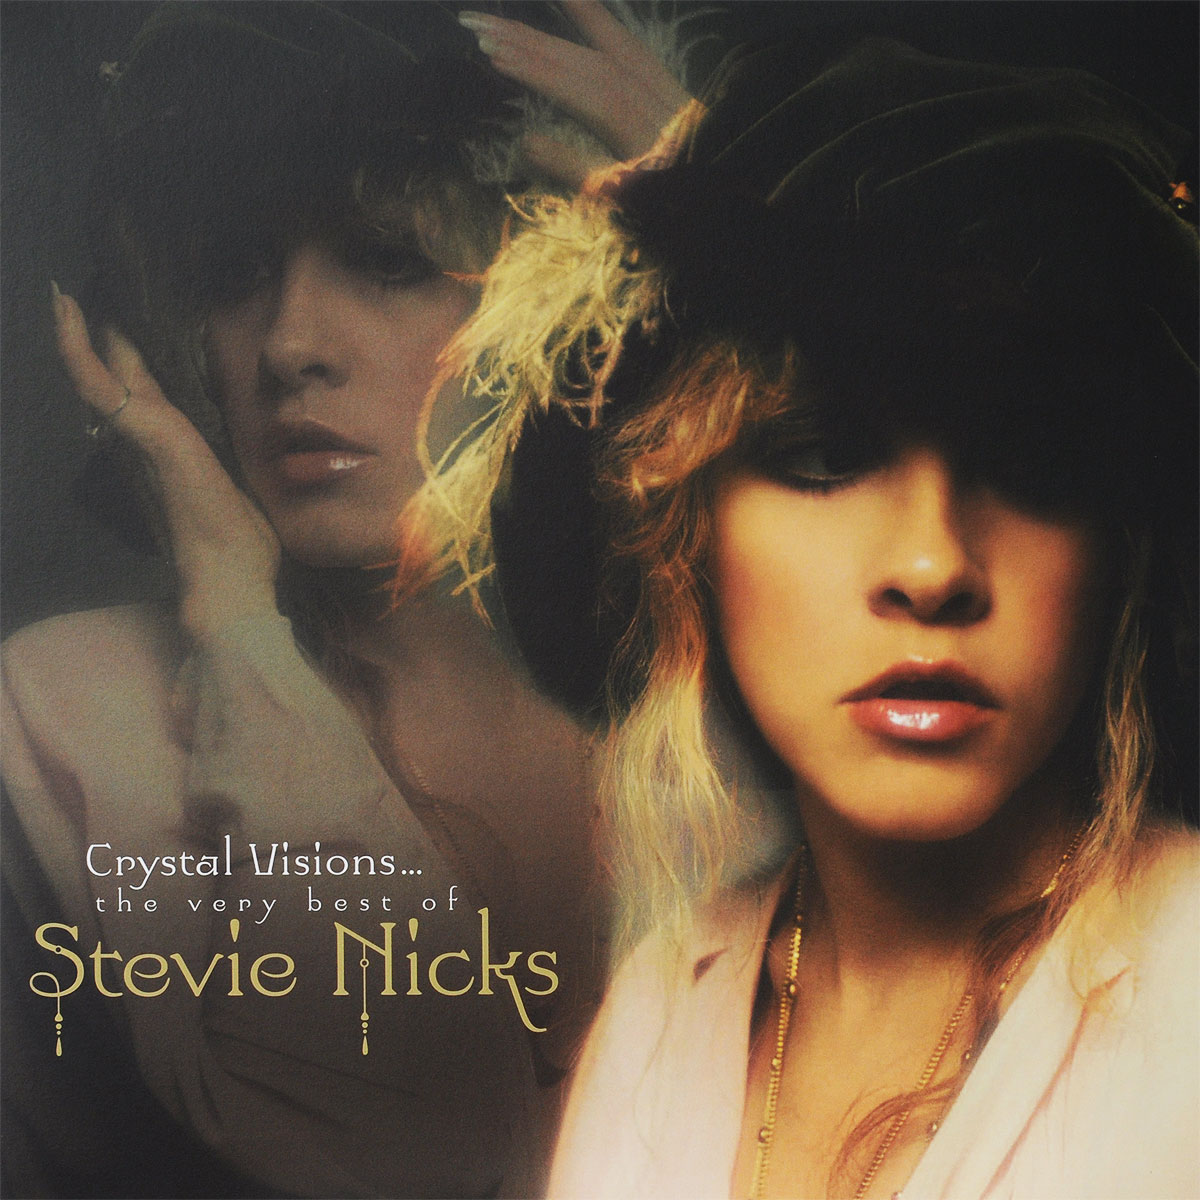 Стиви Никс Stevie Nicks. Crystal Visions... The Very Best Of Stevie Nicks (2 LP) stevie nicks stevie nicks crystal visions… the very best of stevie nicks 2 lp